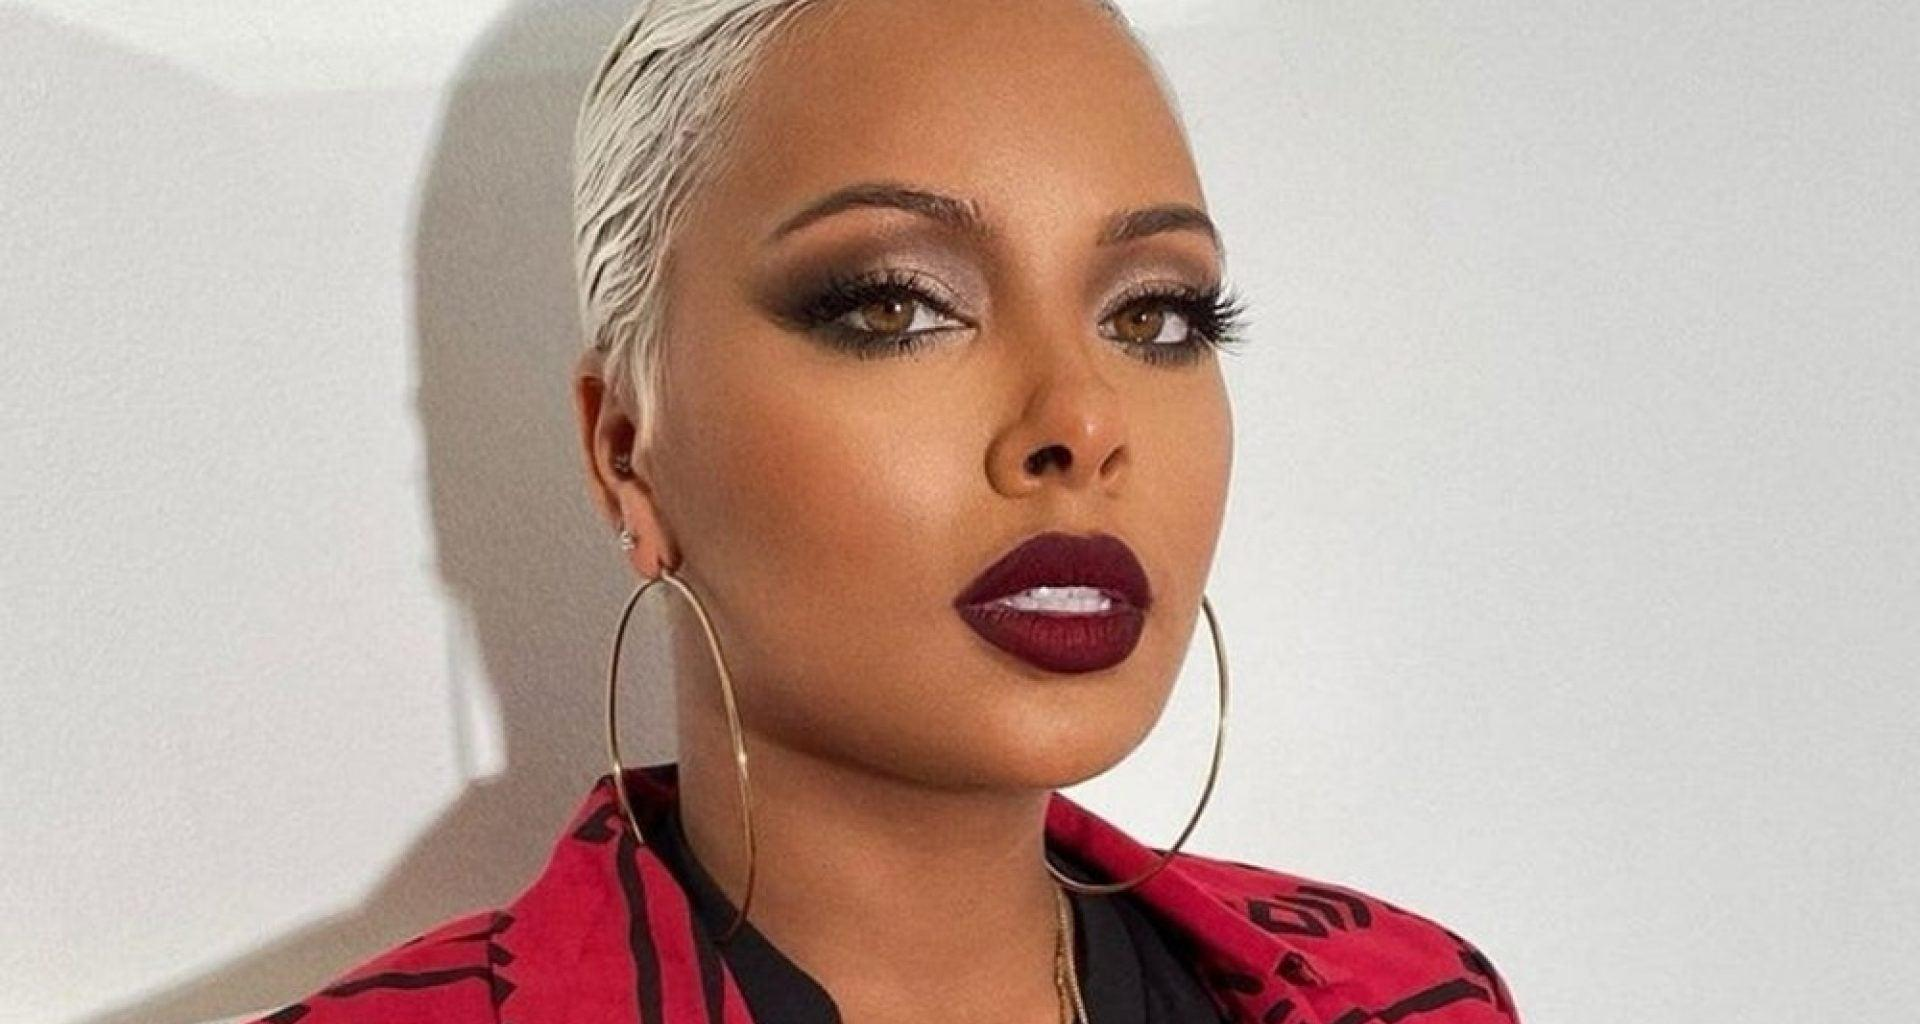 Eva Marcille Is Enraged Following The George Floyd Case - The Unarmed Black Man Dies After Police Officer Kneeled On His Neck